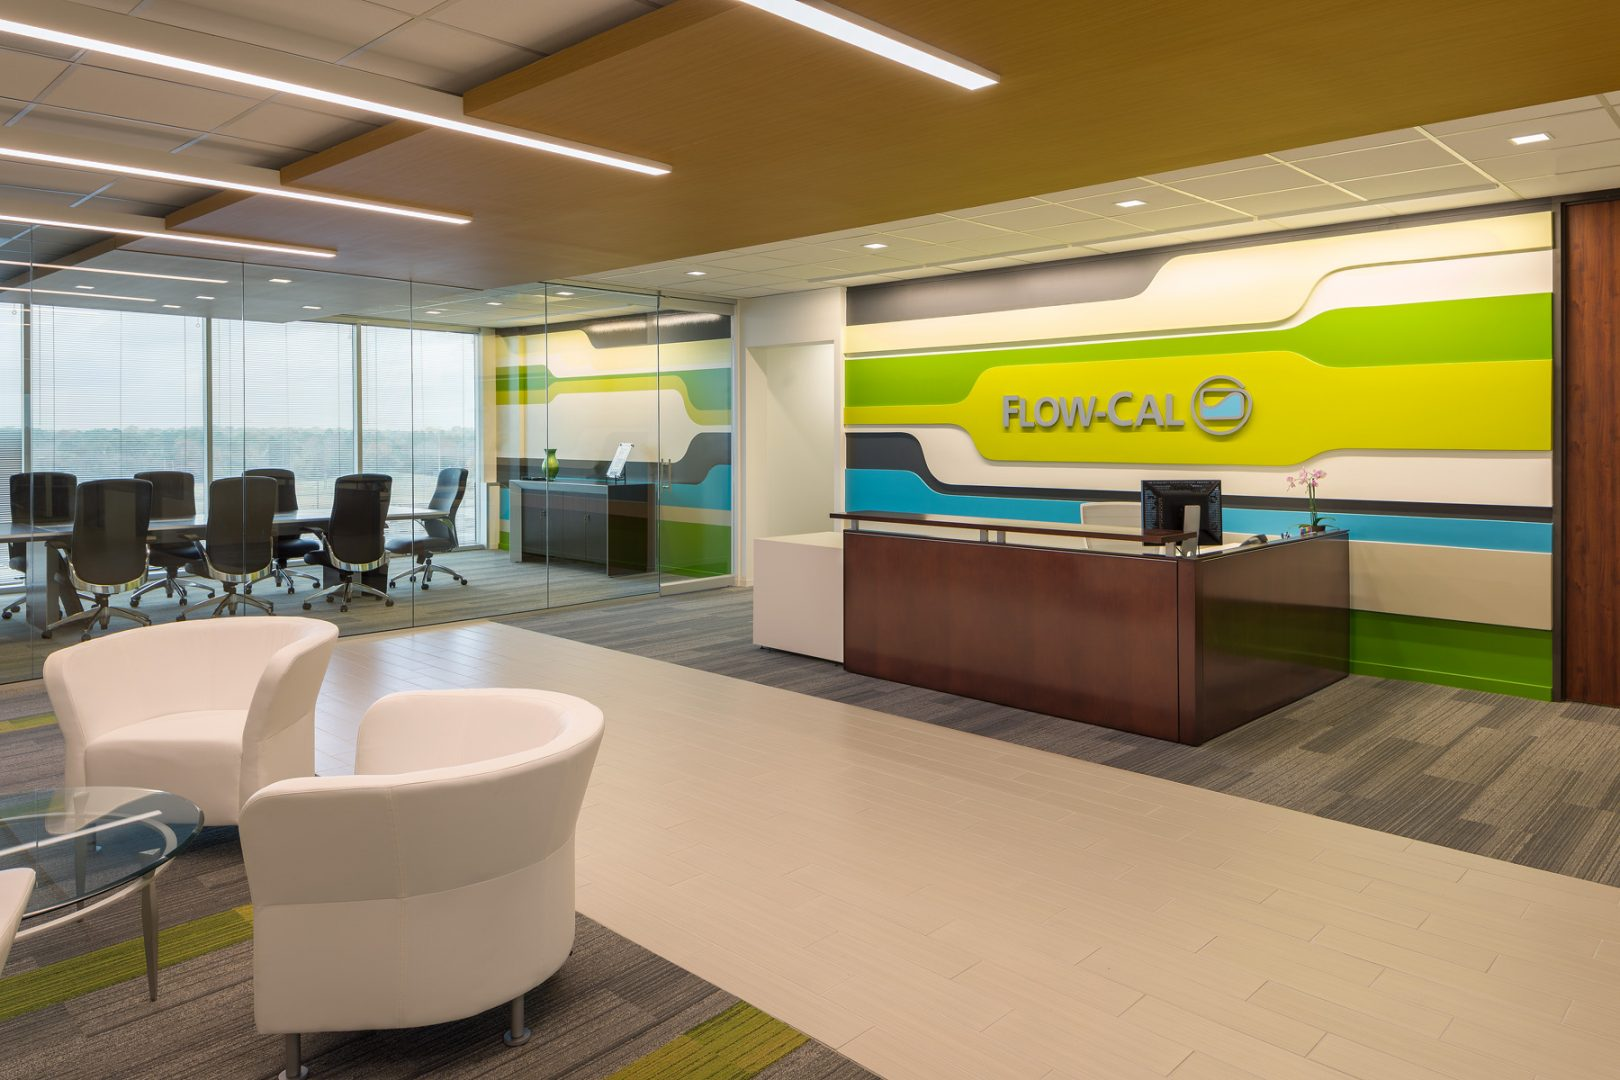 Workplace Interior Design Flow-Cal Houston Reception Entrance Lobby